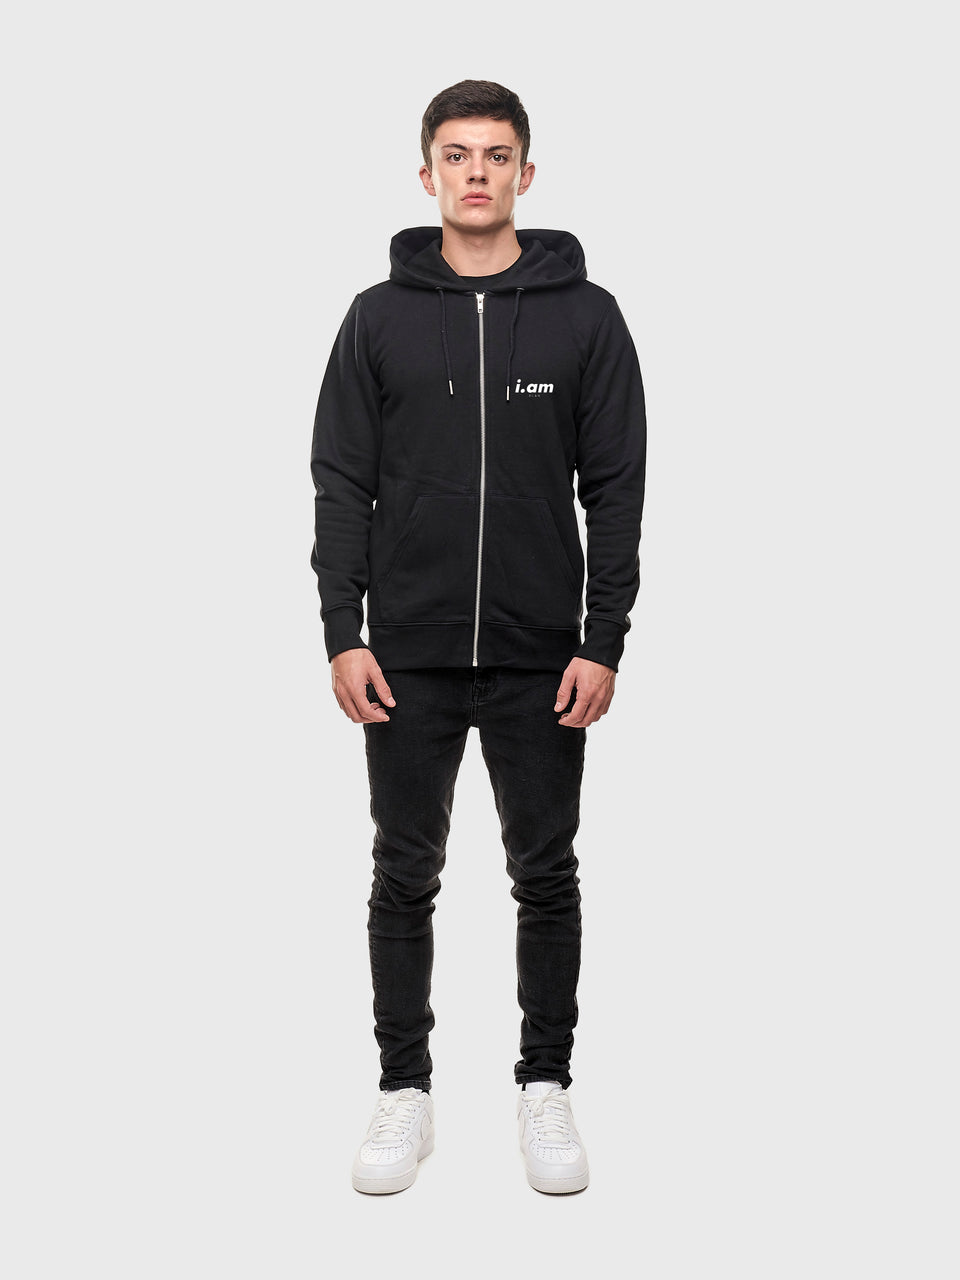 Showing not telling - Black - Unisex zip up hoodie